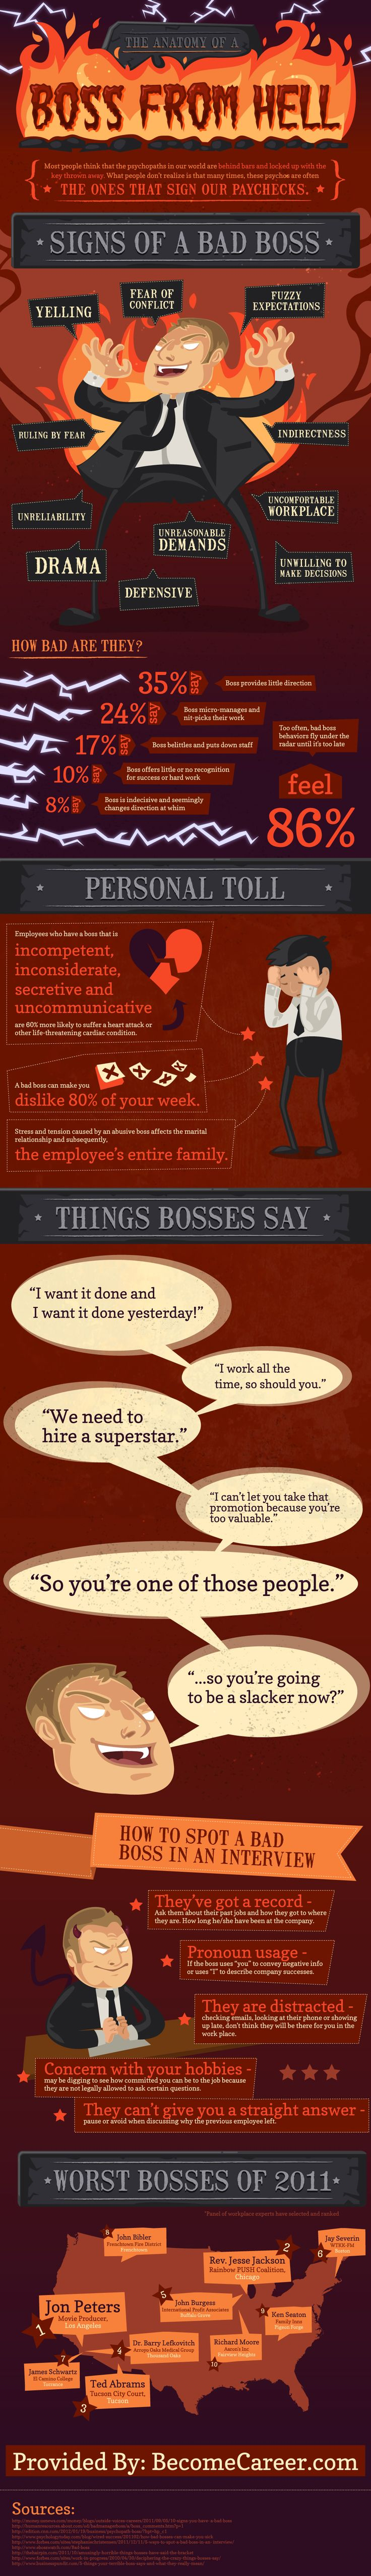 best ideas about bad boss management tips infographic here s how you know you have a boss from hell